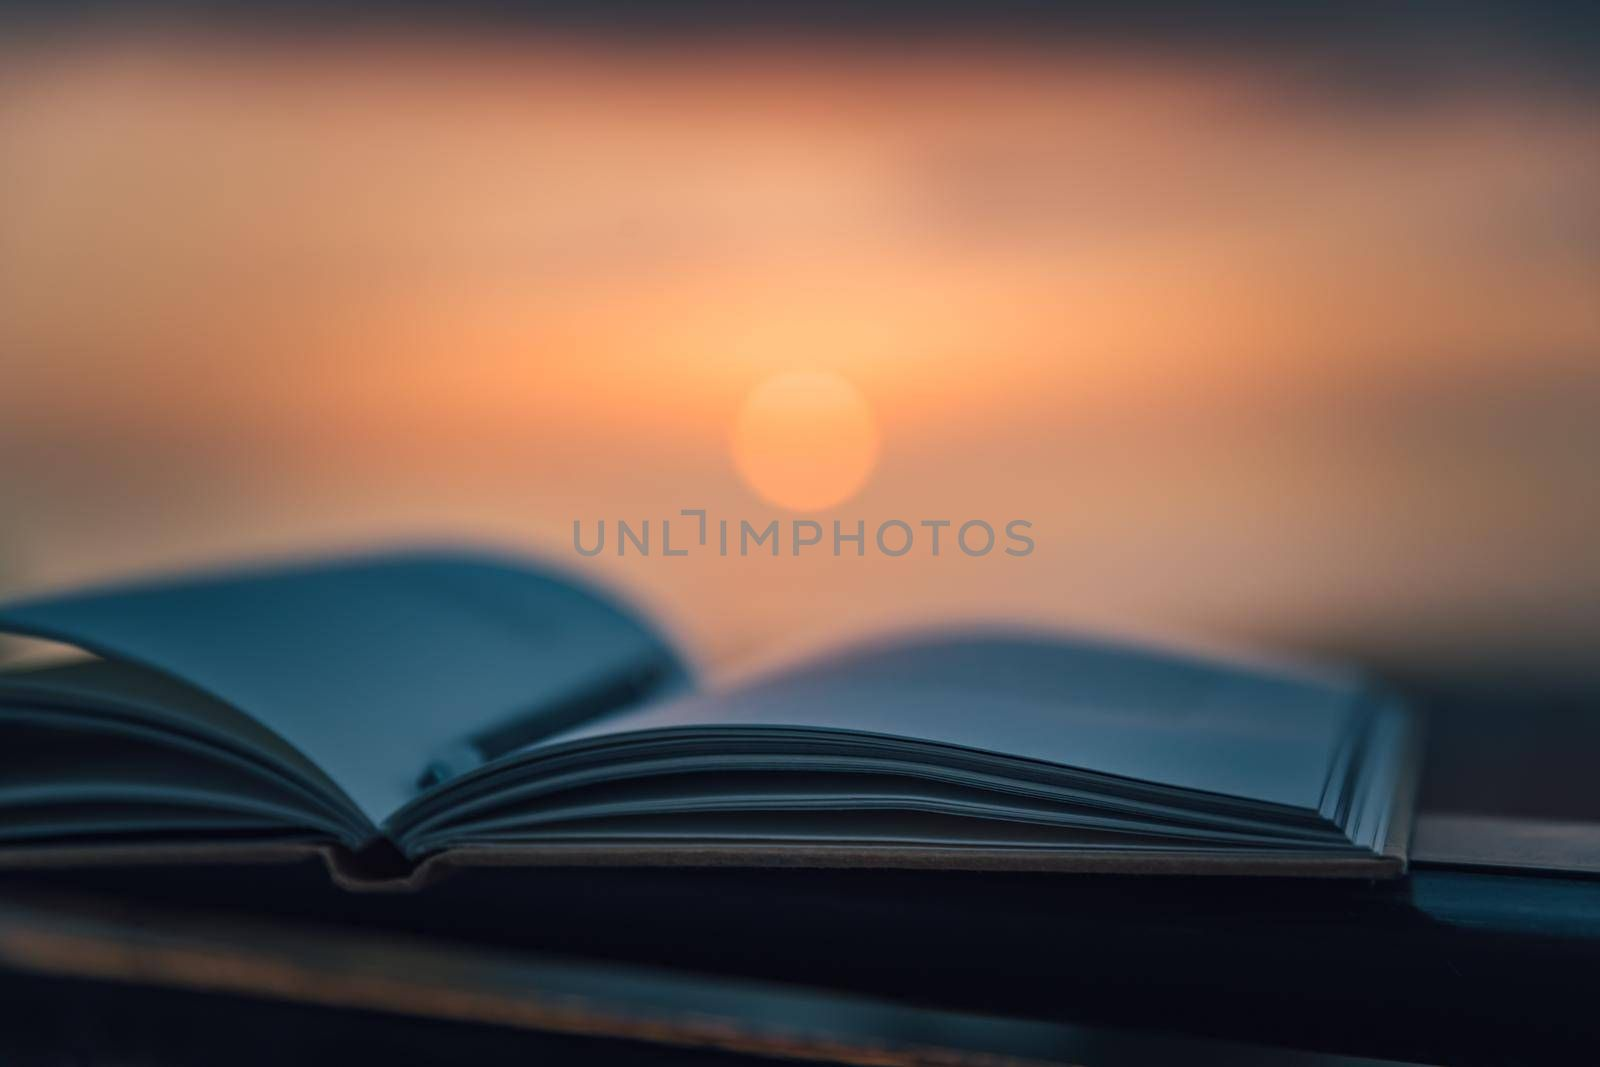 Warm Cozy Evening with an Interesting Book Outdoors. Mild Sunset Light. Pen to Mark the Most Important Things. Calm Pleasant Pastime.